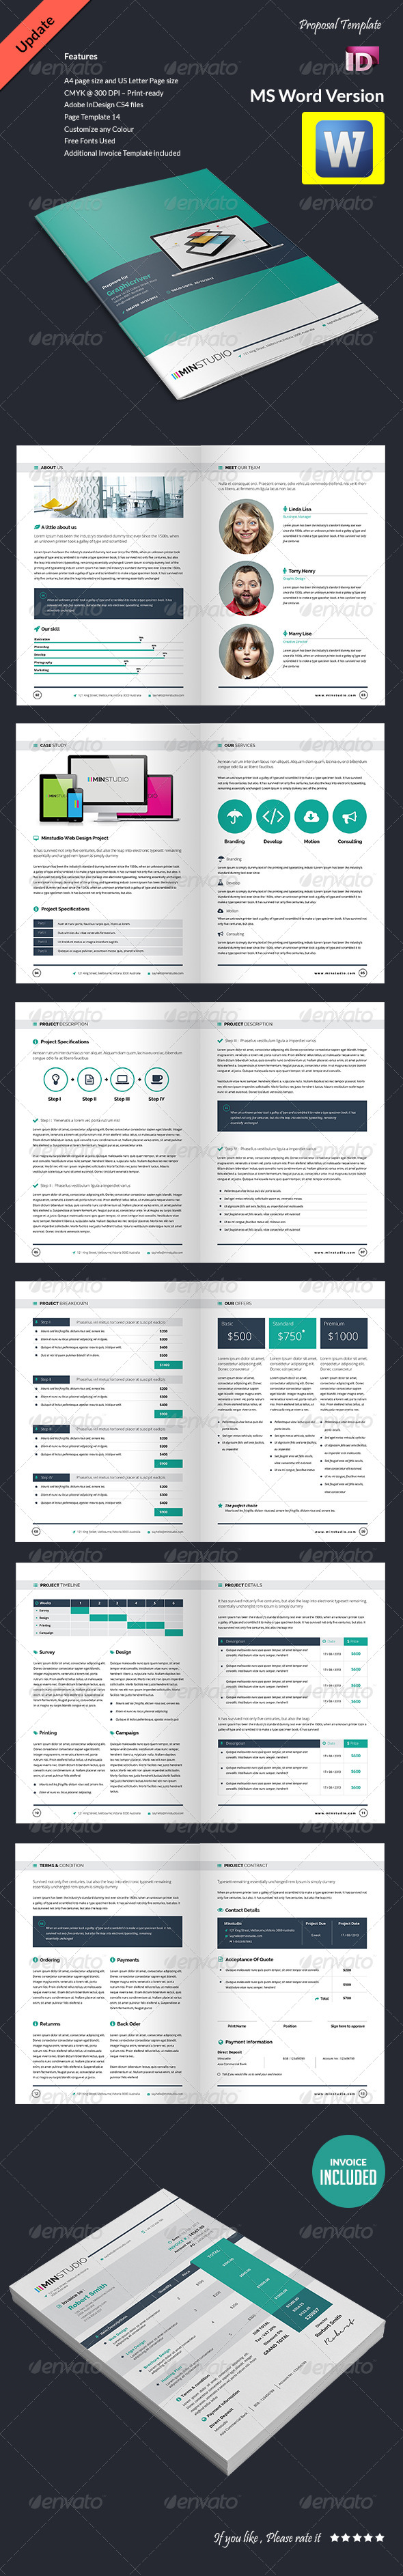 Proposal Template Update Ms Word Version Graphicriver  Word